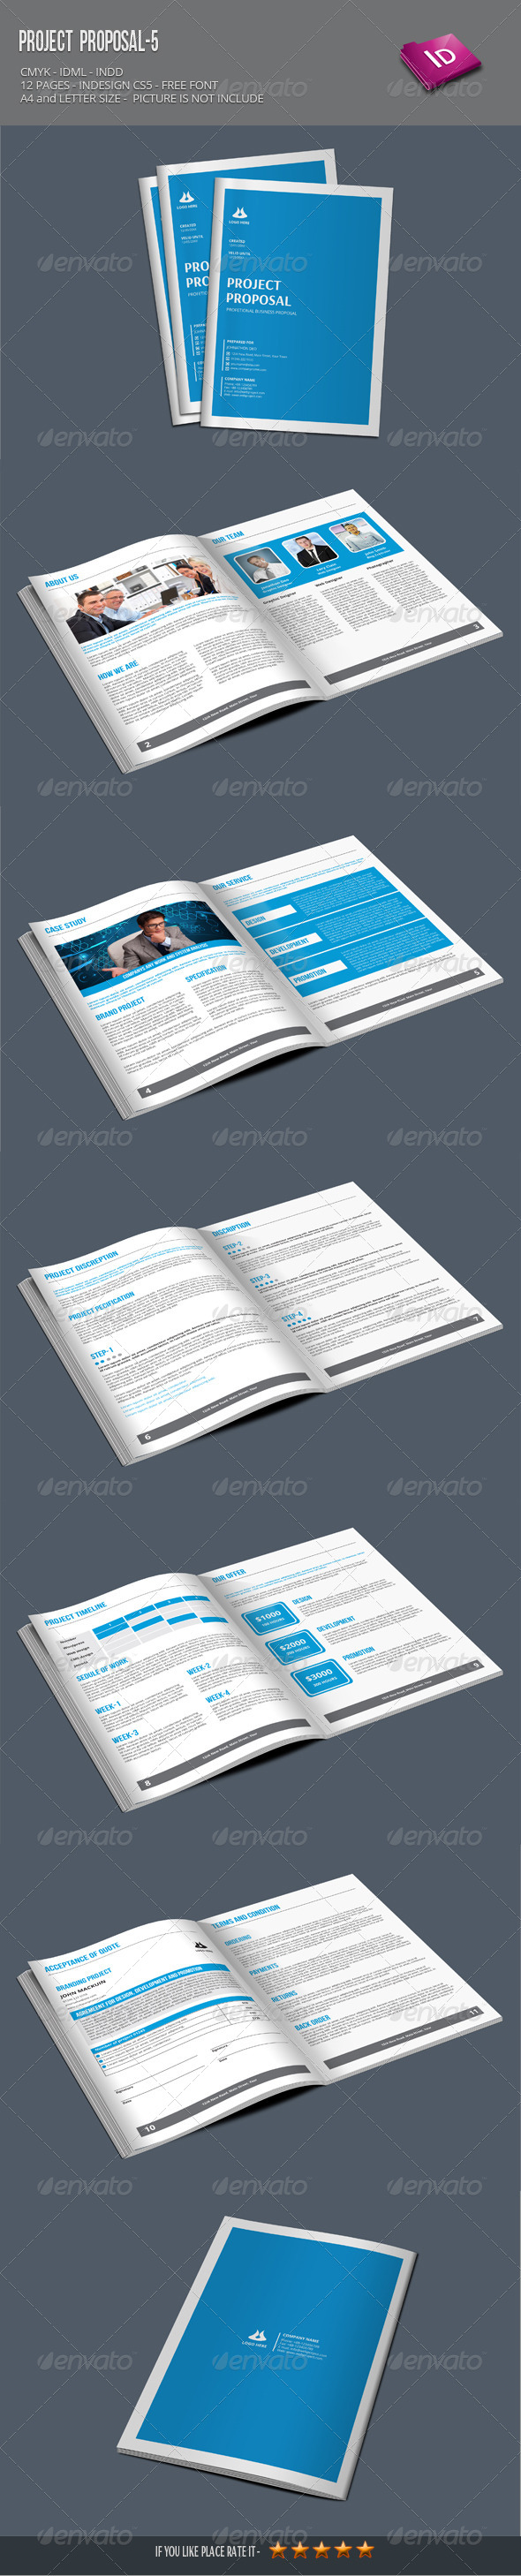 GraphicRiver Project Proposal-5 7951190